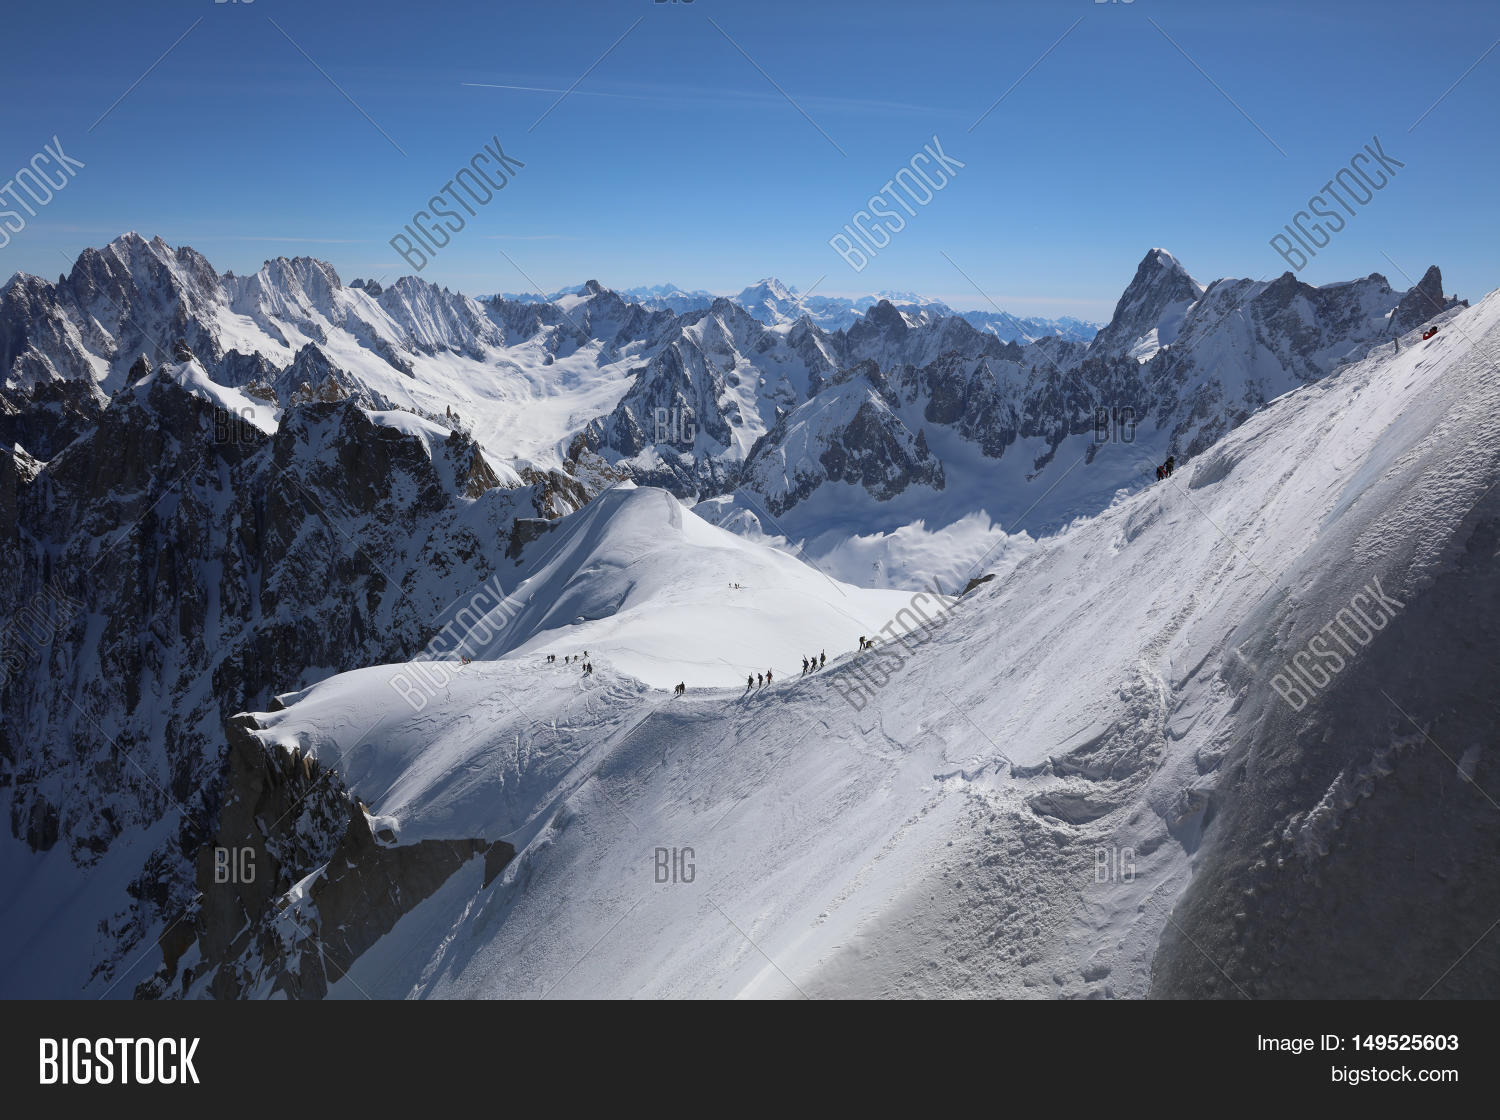 chamonix mont blanc may 20 2016 skiing area vallee blanchet at aiguille de